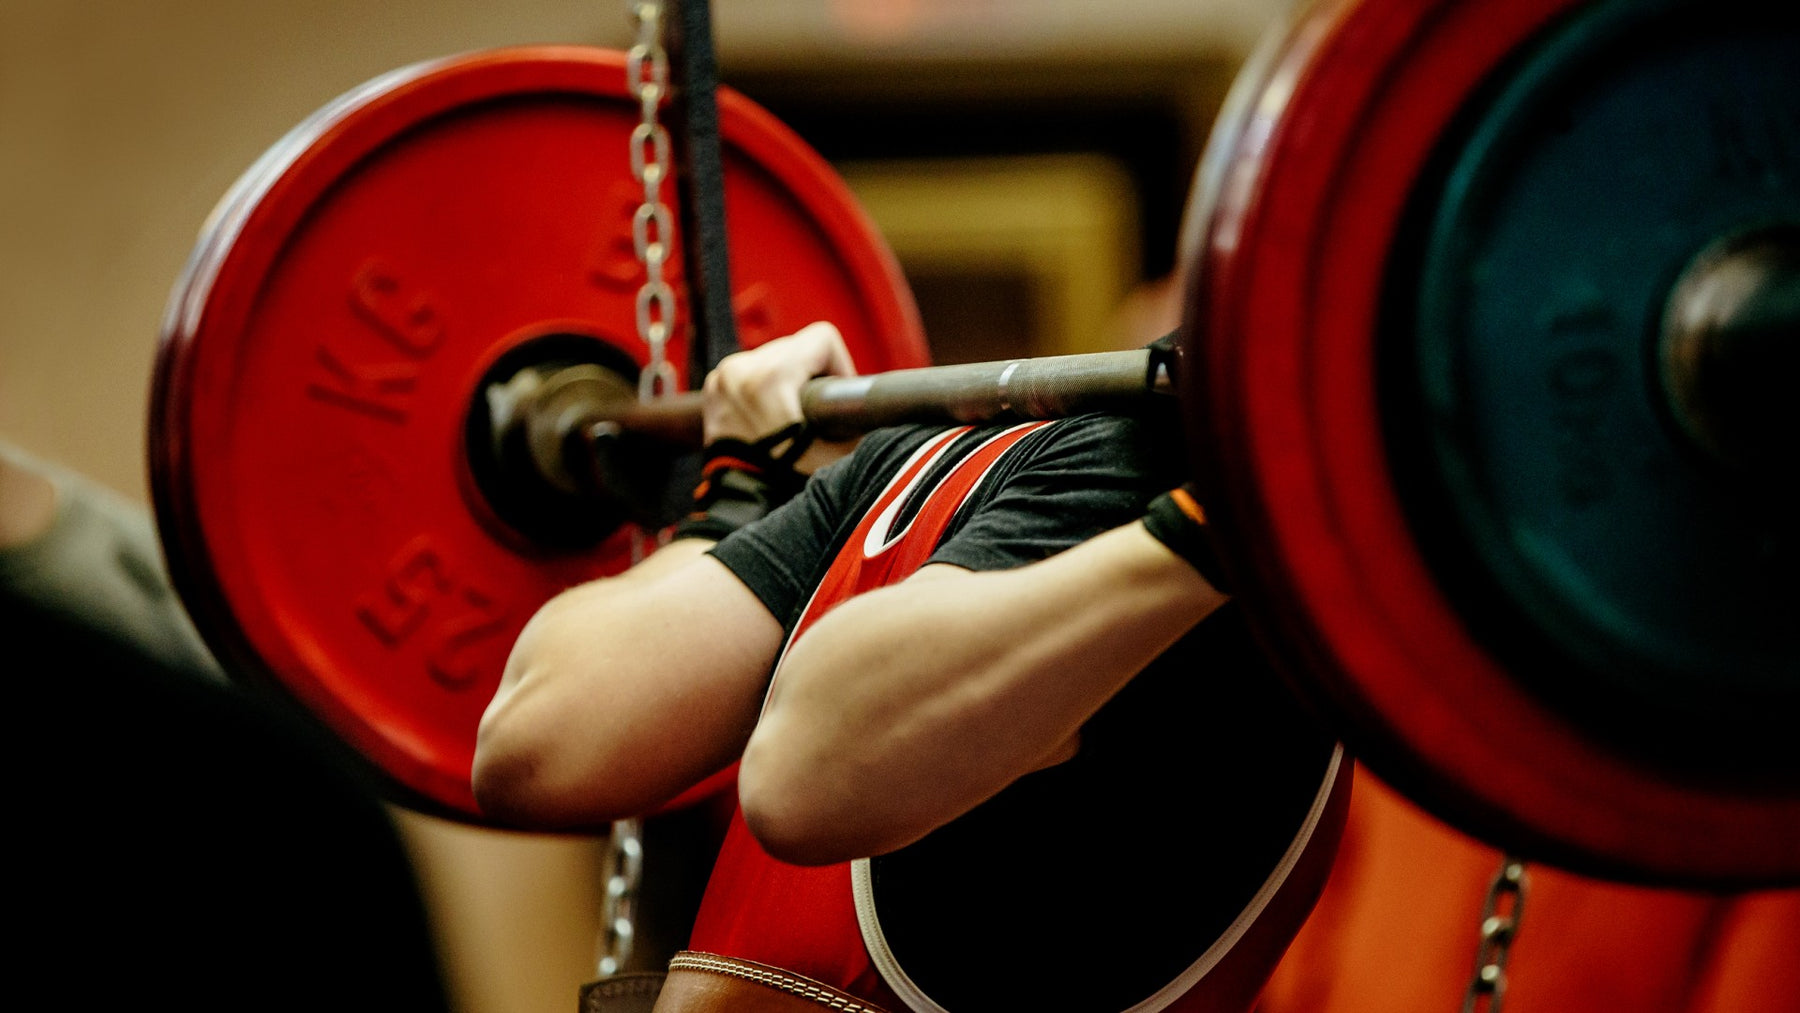 9 Reasons to Become a Strength Athlete